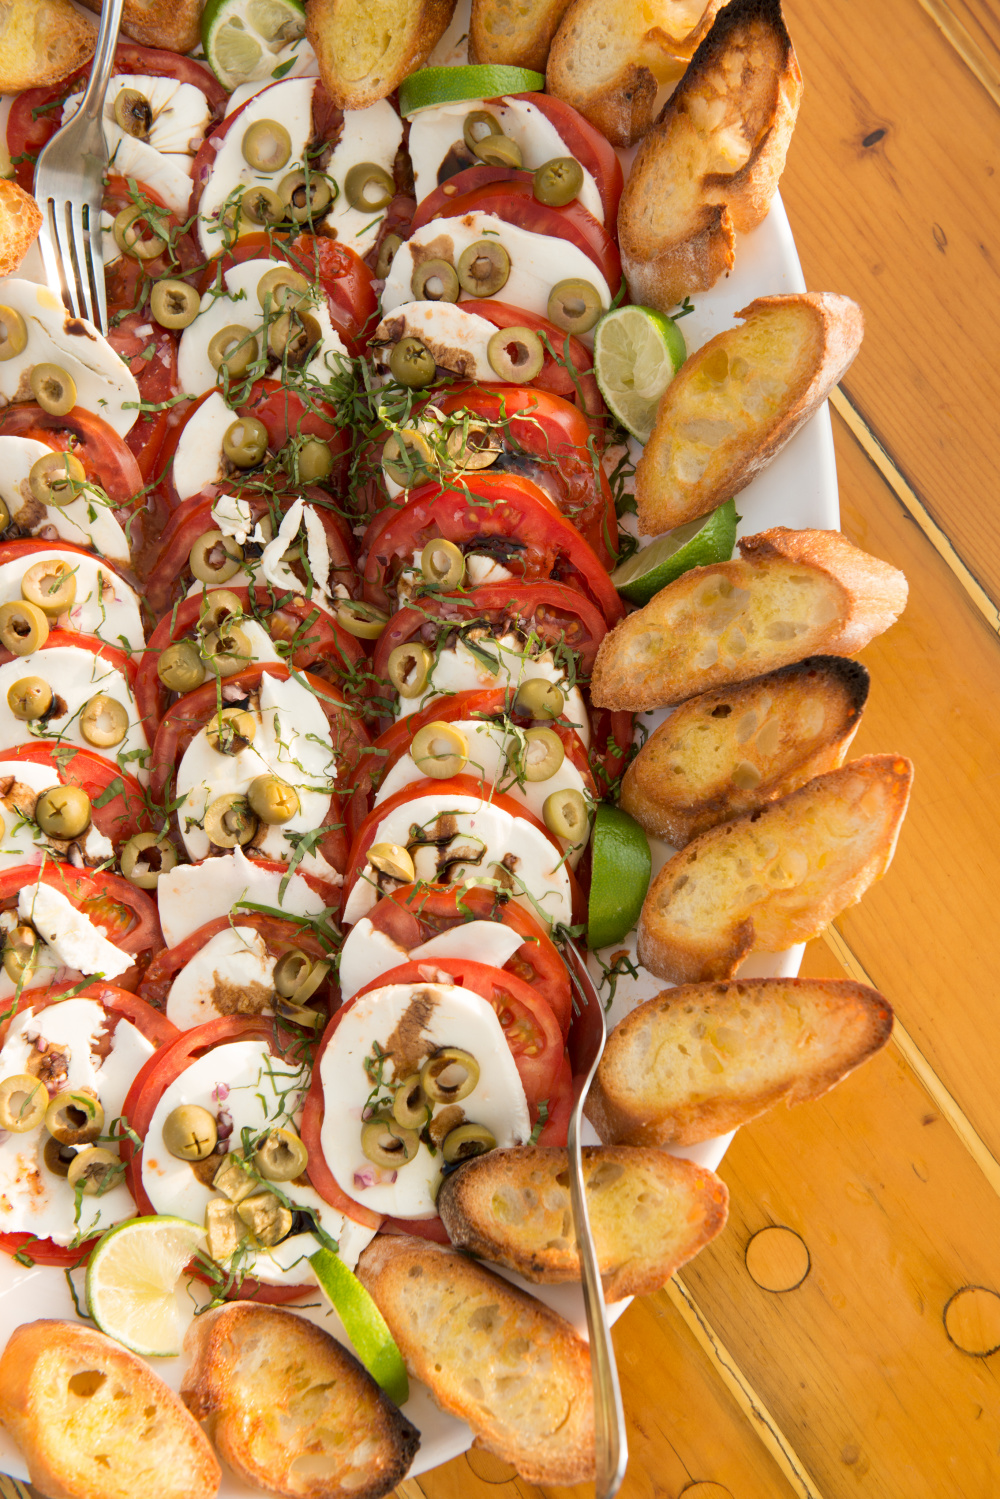 Caprese Crostini Photo by Douglas Merriam